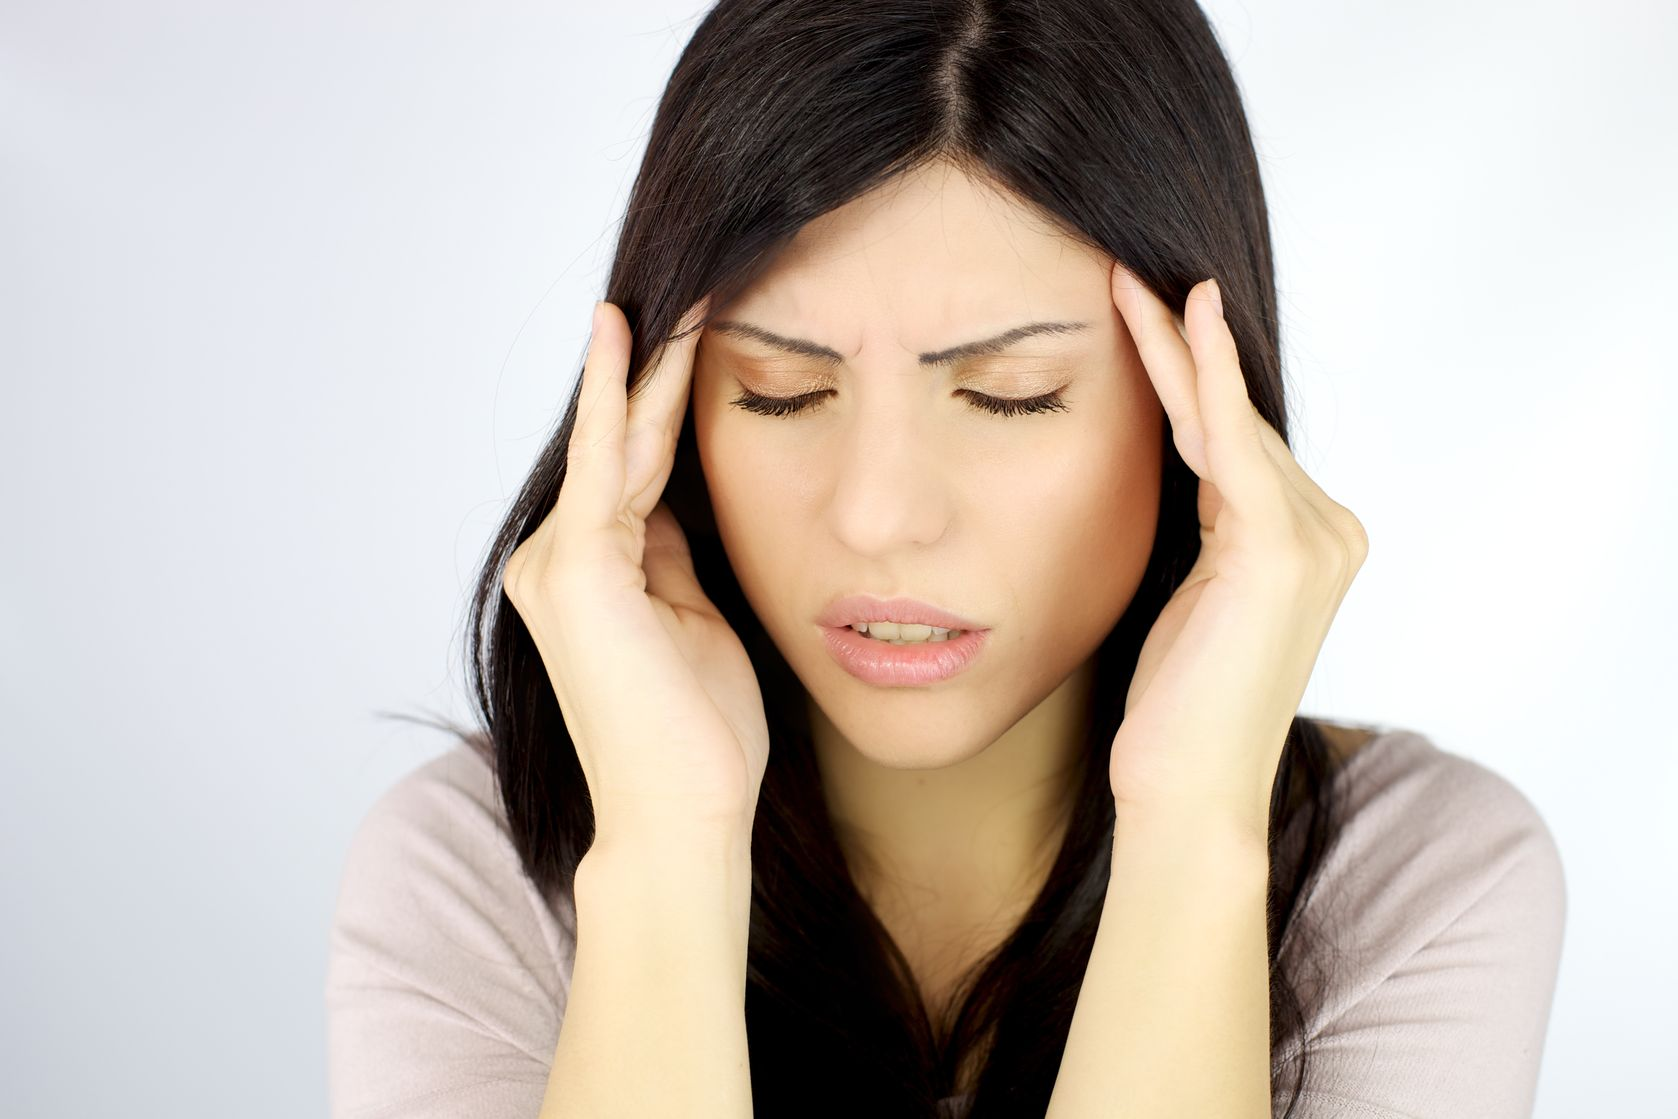 acupuncture reduces frequency and severity of migraines